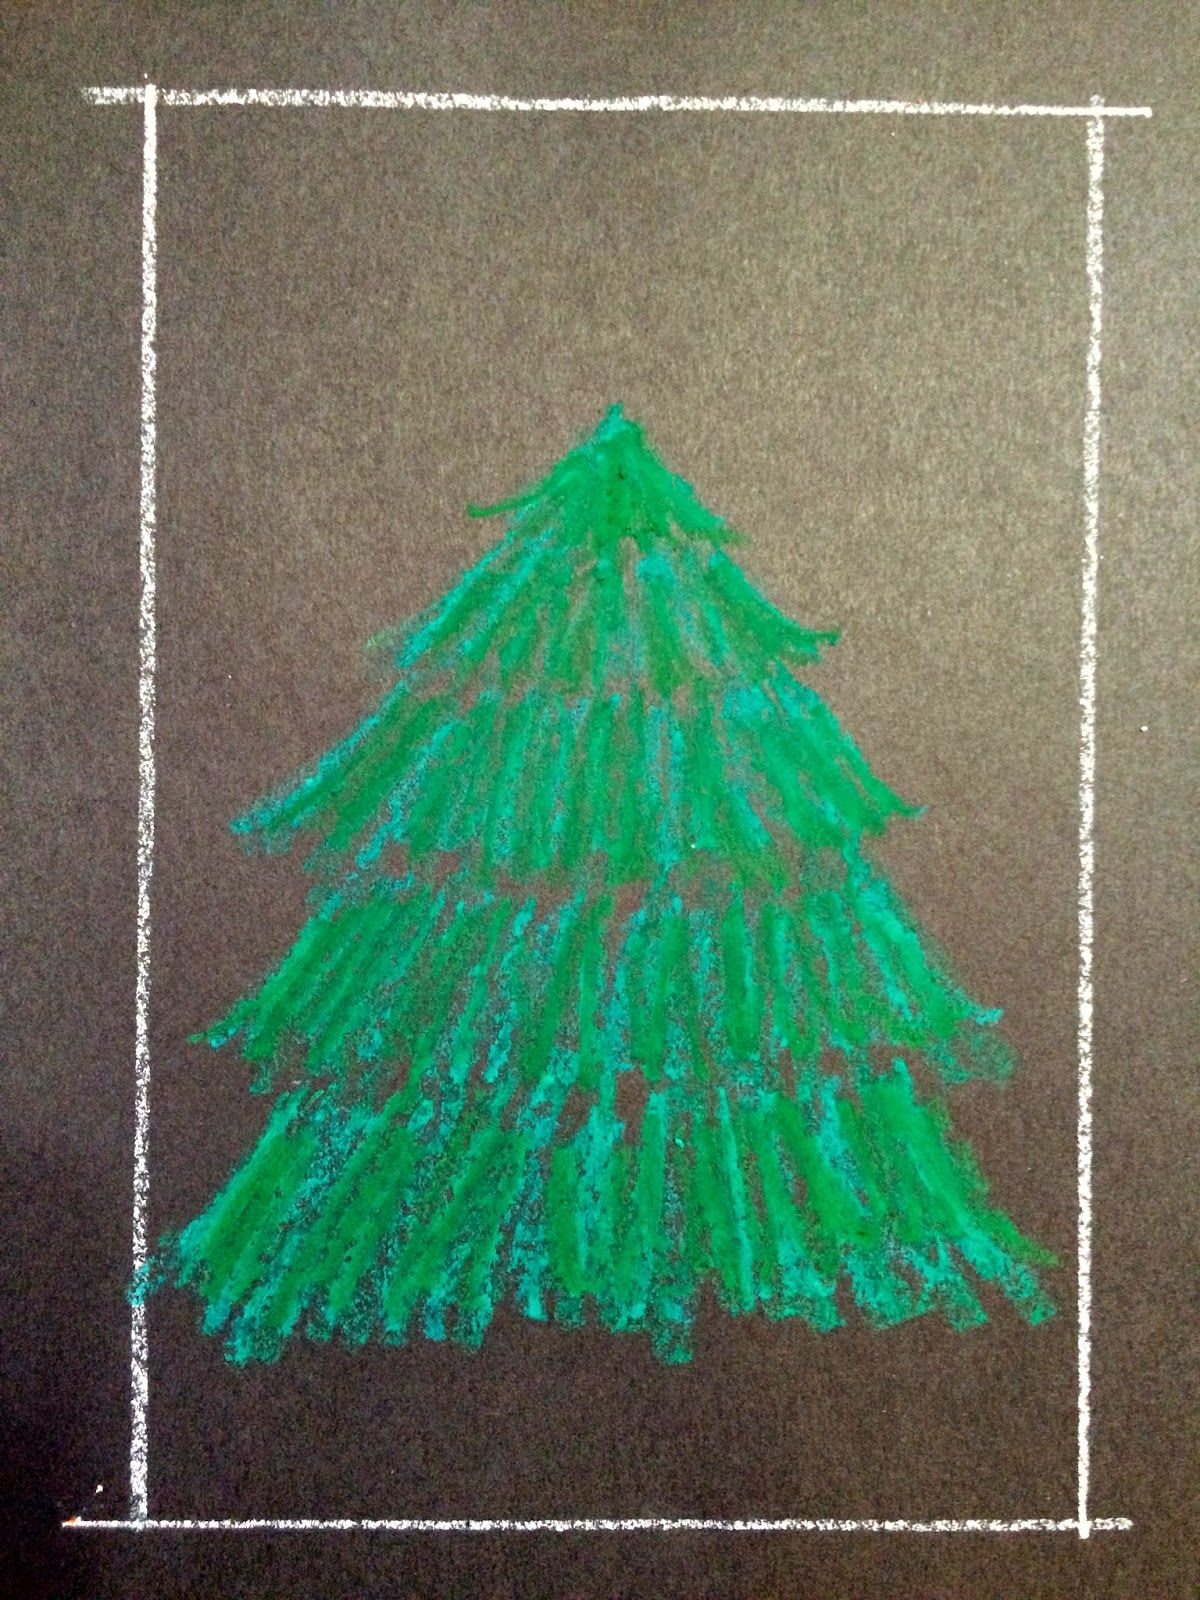 Kathy S Angelnik Designs Art Project Ideas Oil Pastel Christmas Tree In A Snowstor Christmas Tree Drawing Easy Christmas Art Projects Christmas Tree Drawing